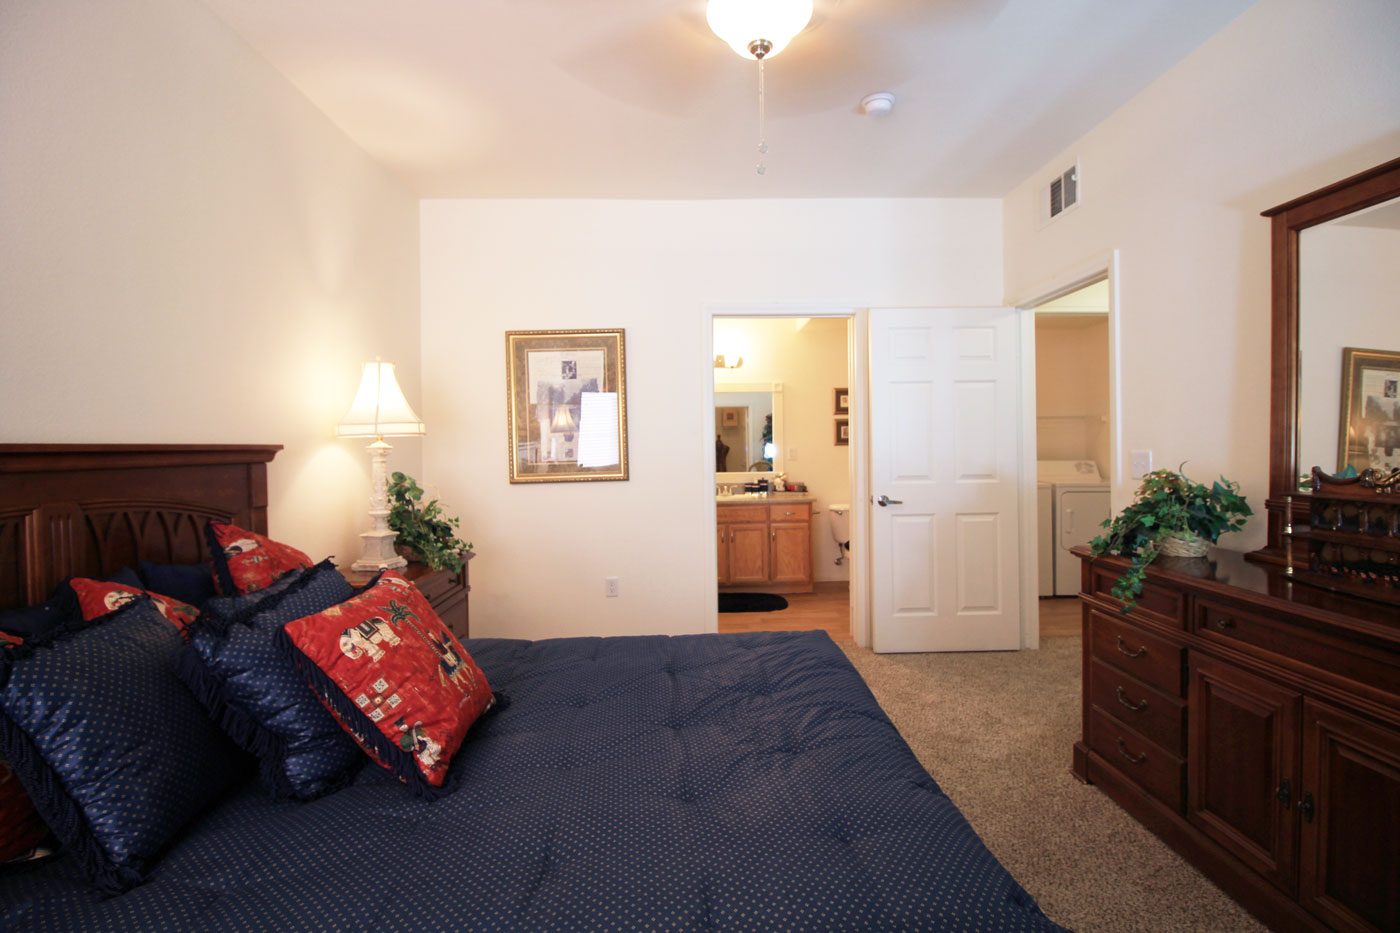 Large bedroom with kind sized bed with a blue comforter and view of bathroom and laundry room.